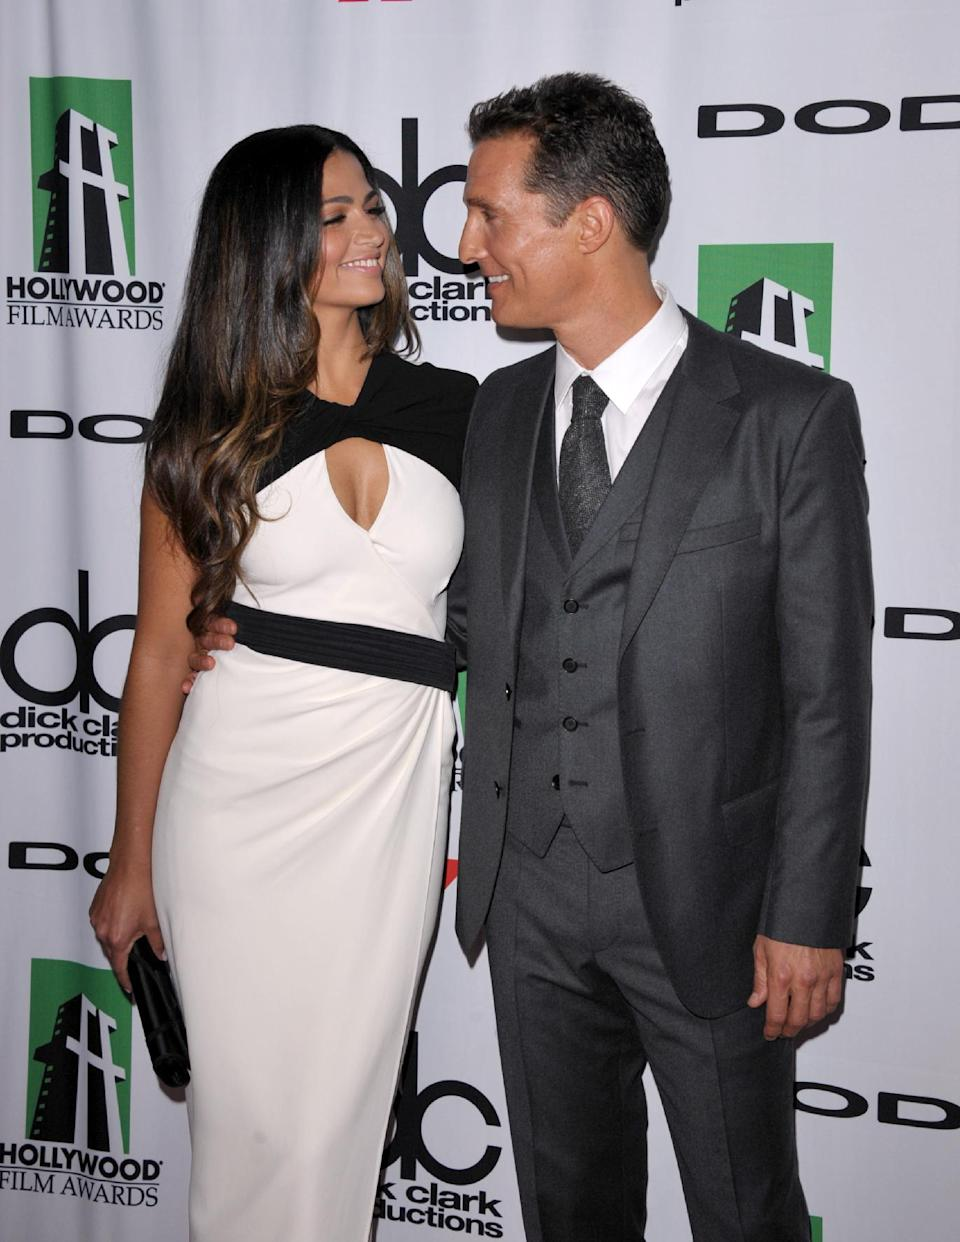 Camila Alves, left, and Matthew McConaughey arrive at the 17th Annual Hollywood Film Awards Gala at the Beverly Hilton Hotel on Monday, Oct. 21, 2013, in Beverly Hills, Calif. (Photo by John Shearer/Invision/AP)